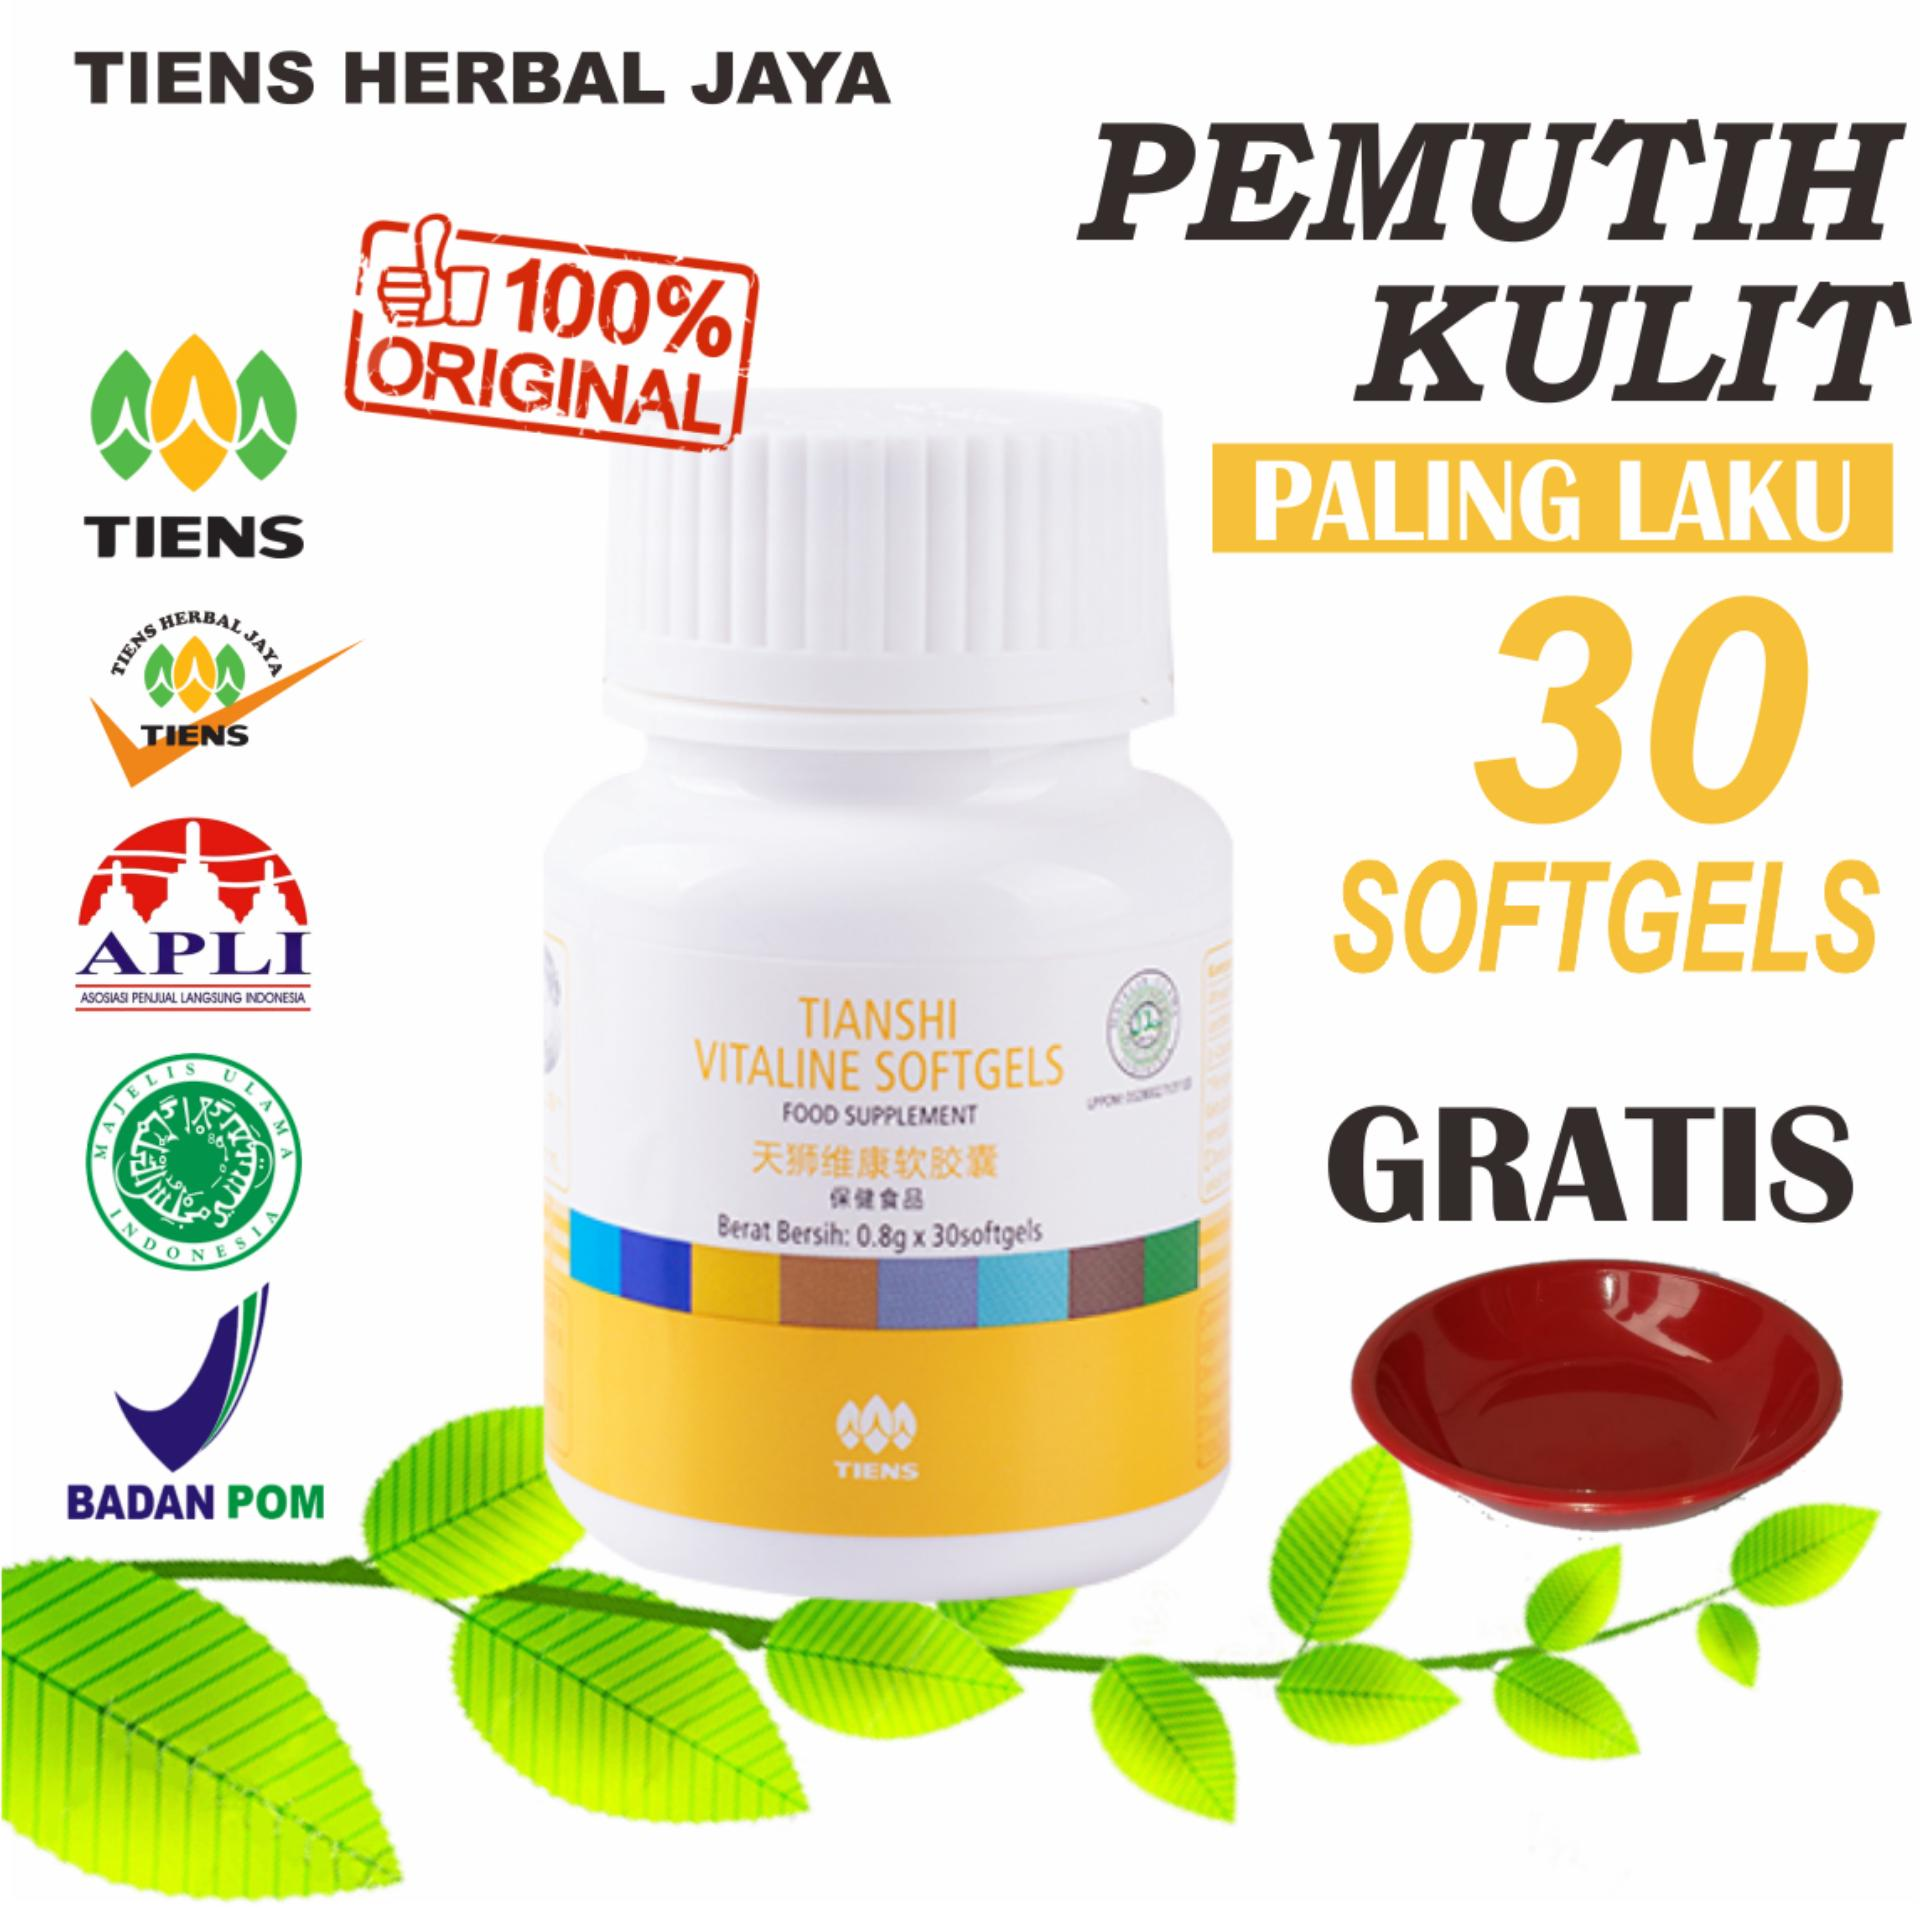 Tiens Vitaline Pemutih Kulit Herbal Alami (30 softgels) PROMO.! By Tiens Herbal Jaya